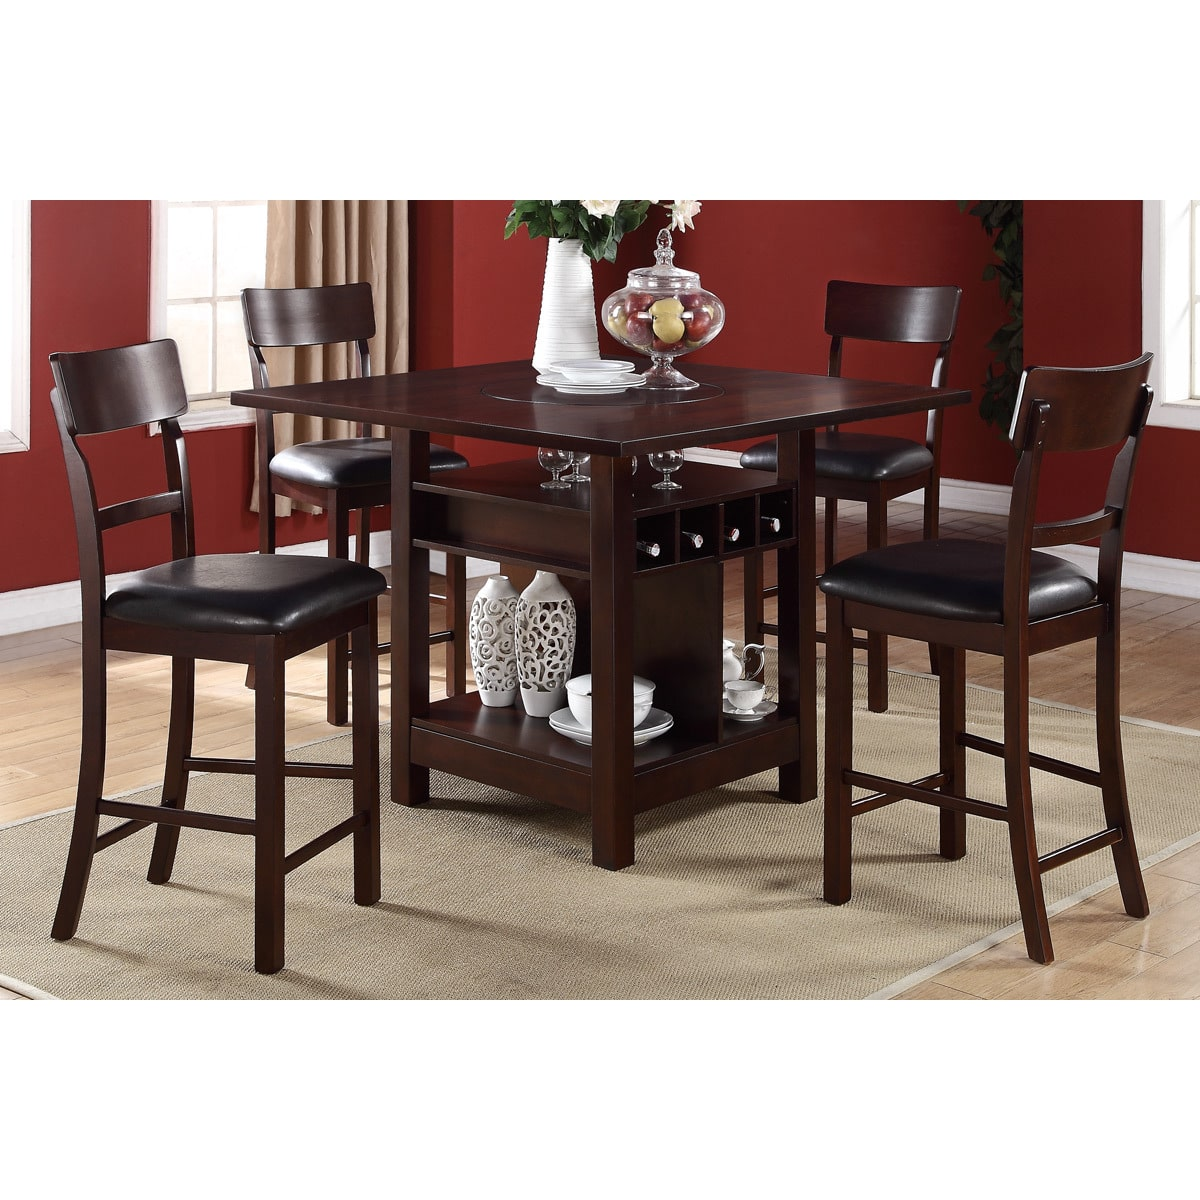 Arezzo Bistro Set by Overstock